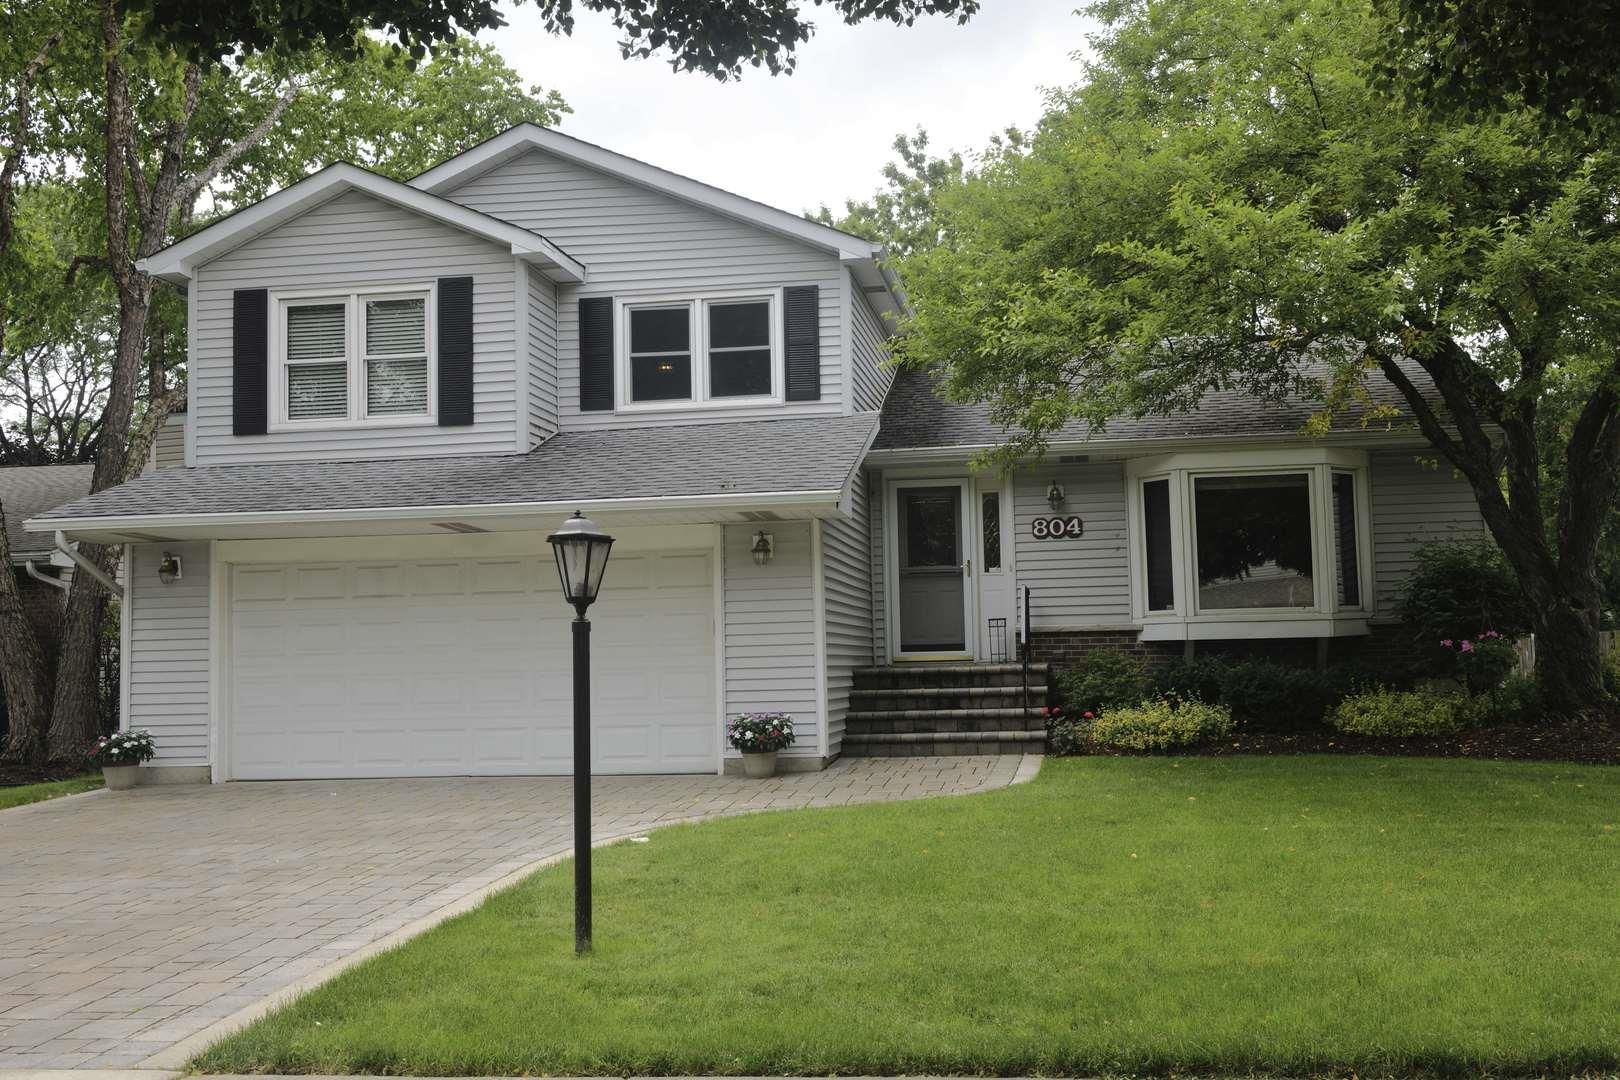 804 Galleon Lane, Elk Grove Village, IL 60007 - #: 10424954